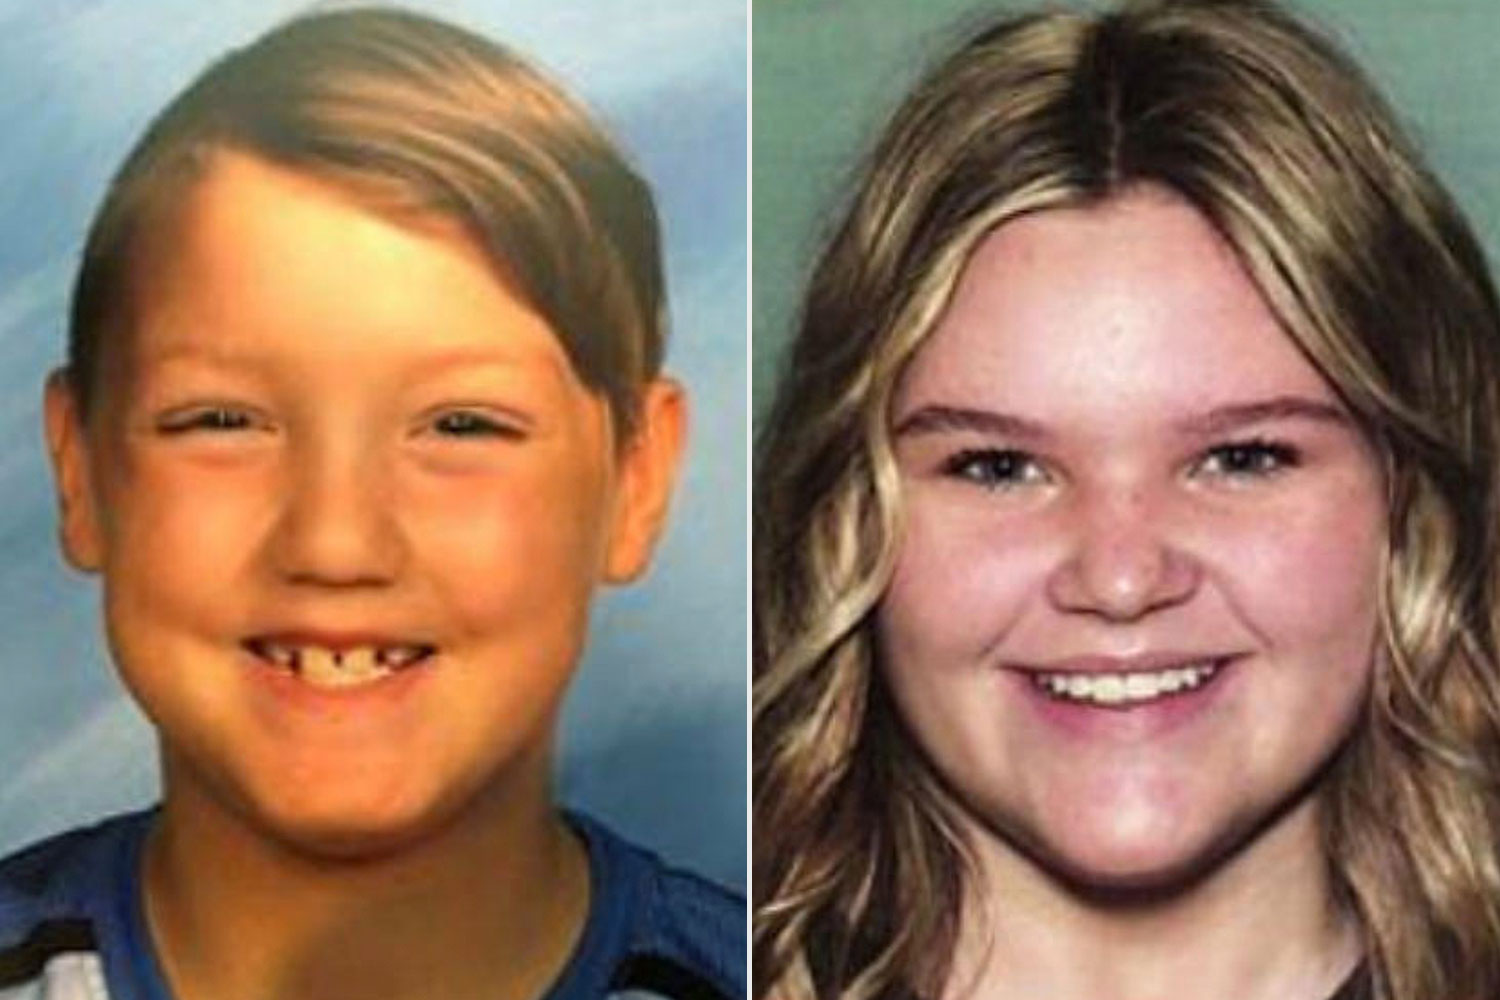 Mom of 2 Missing Kids Believes She's God, Won't Help Police